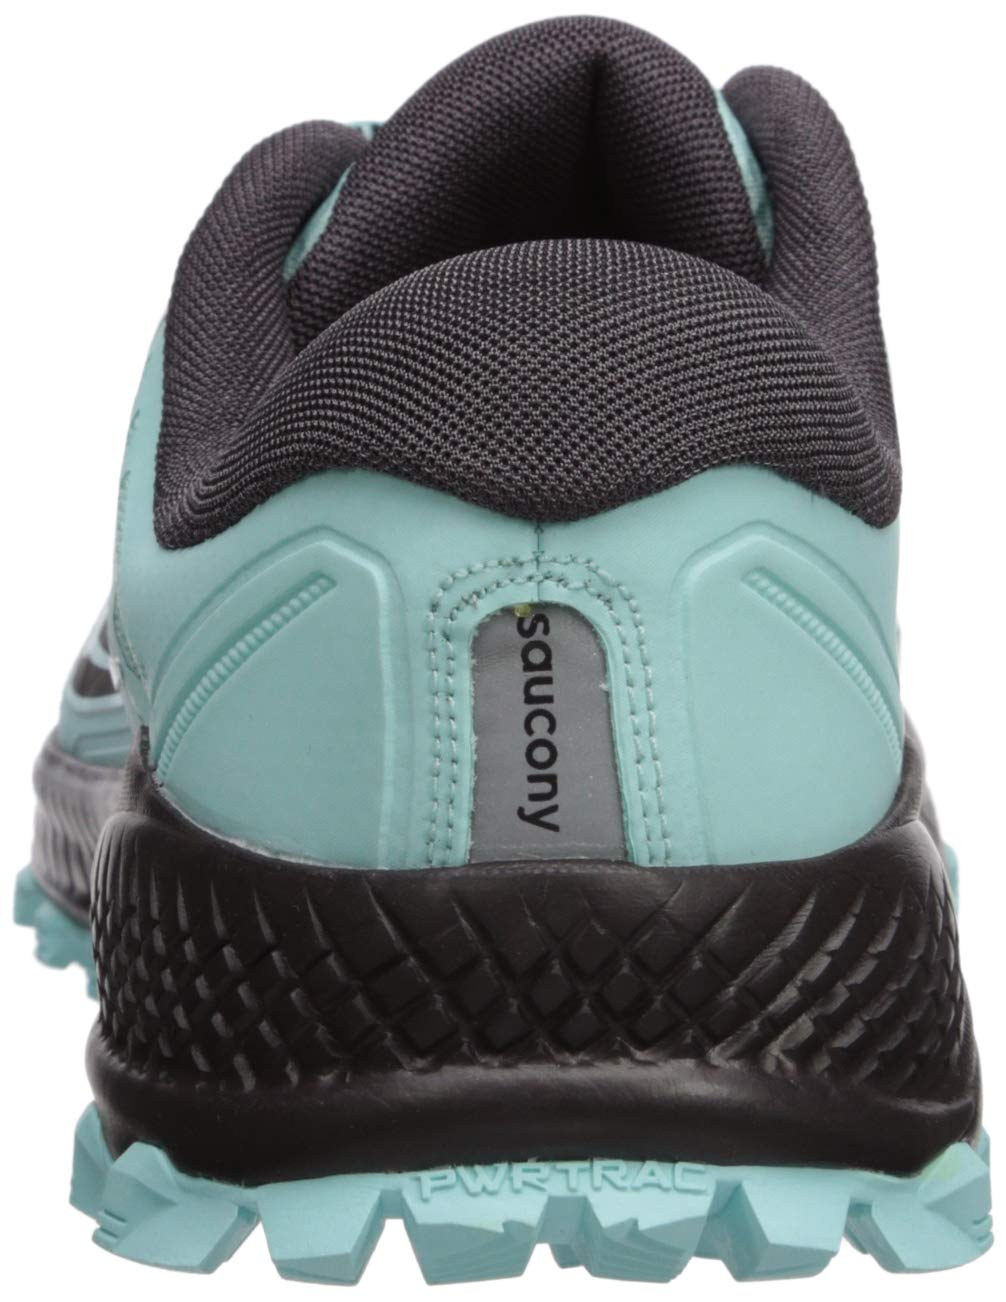 Saucony Women's Peregrine ISO Trail Running Shoe, Aqua/Grey, 5 M US by Saucony (Image #2)